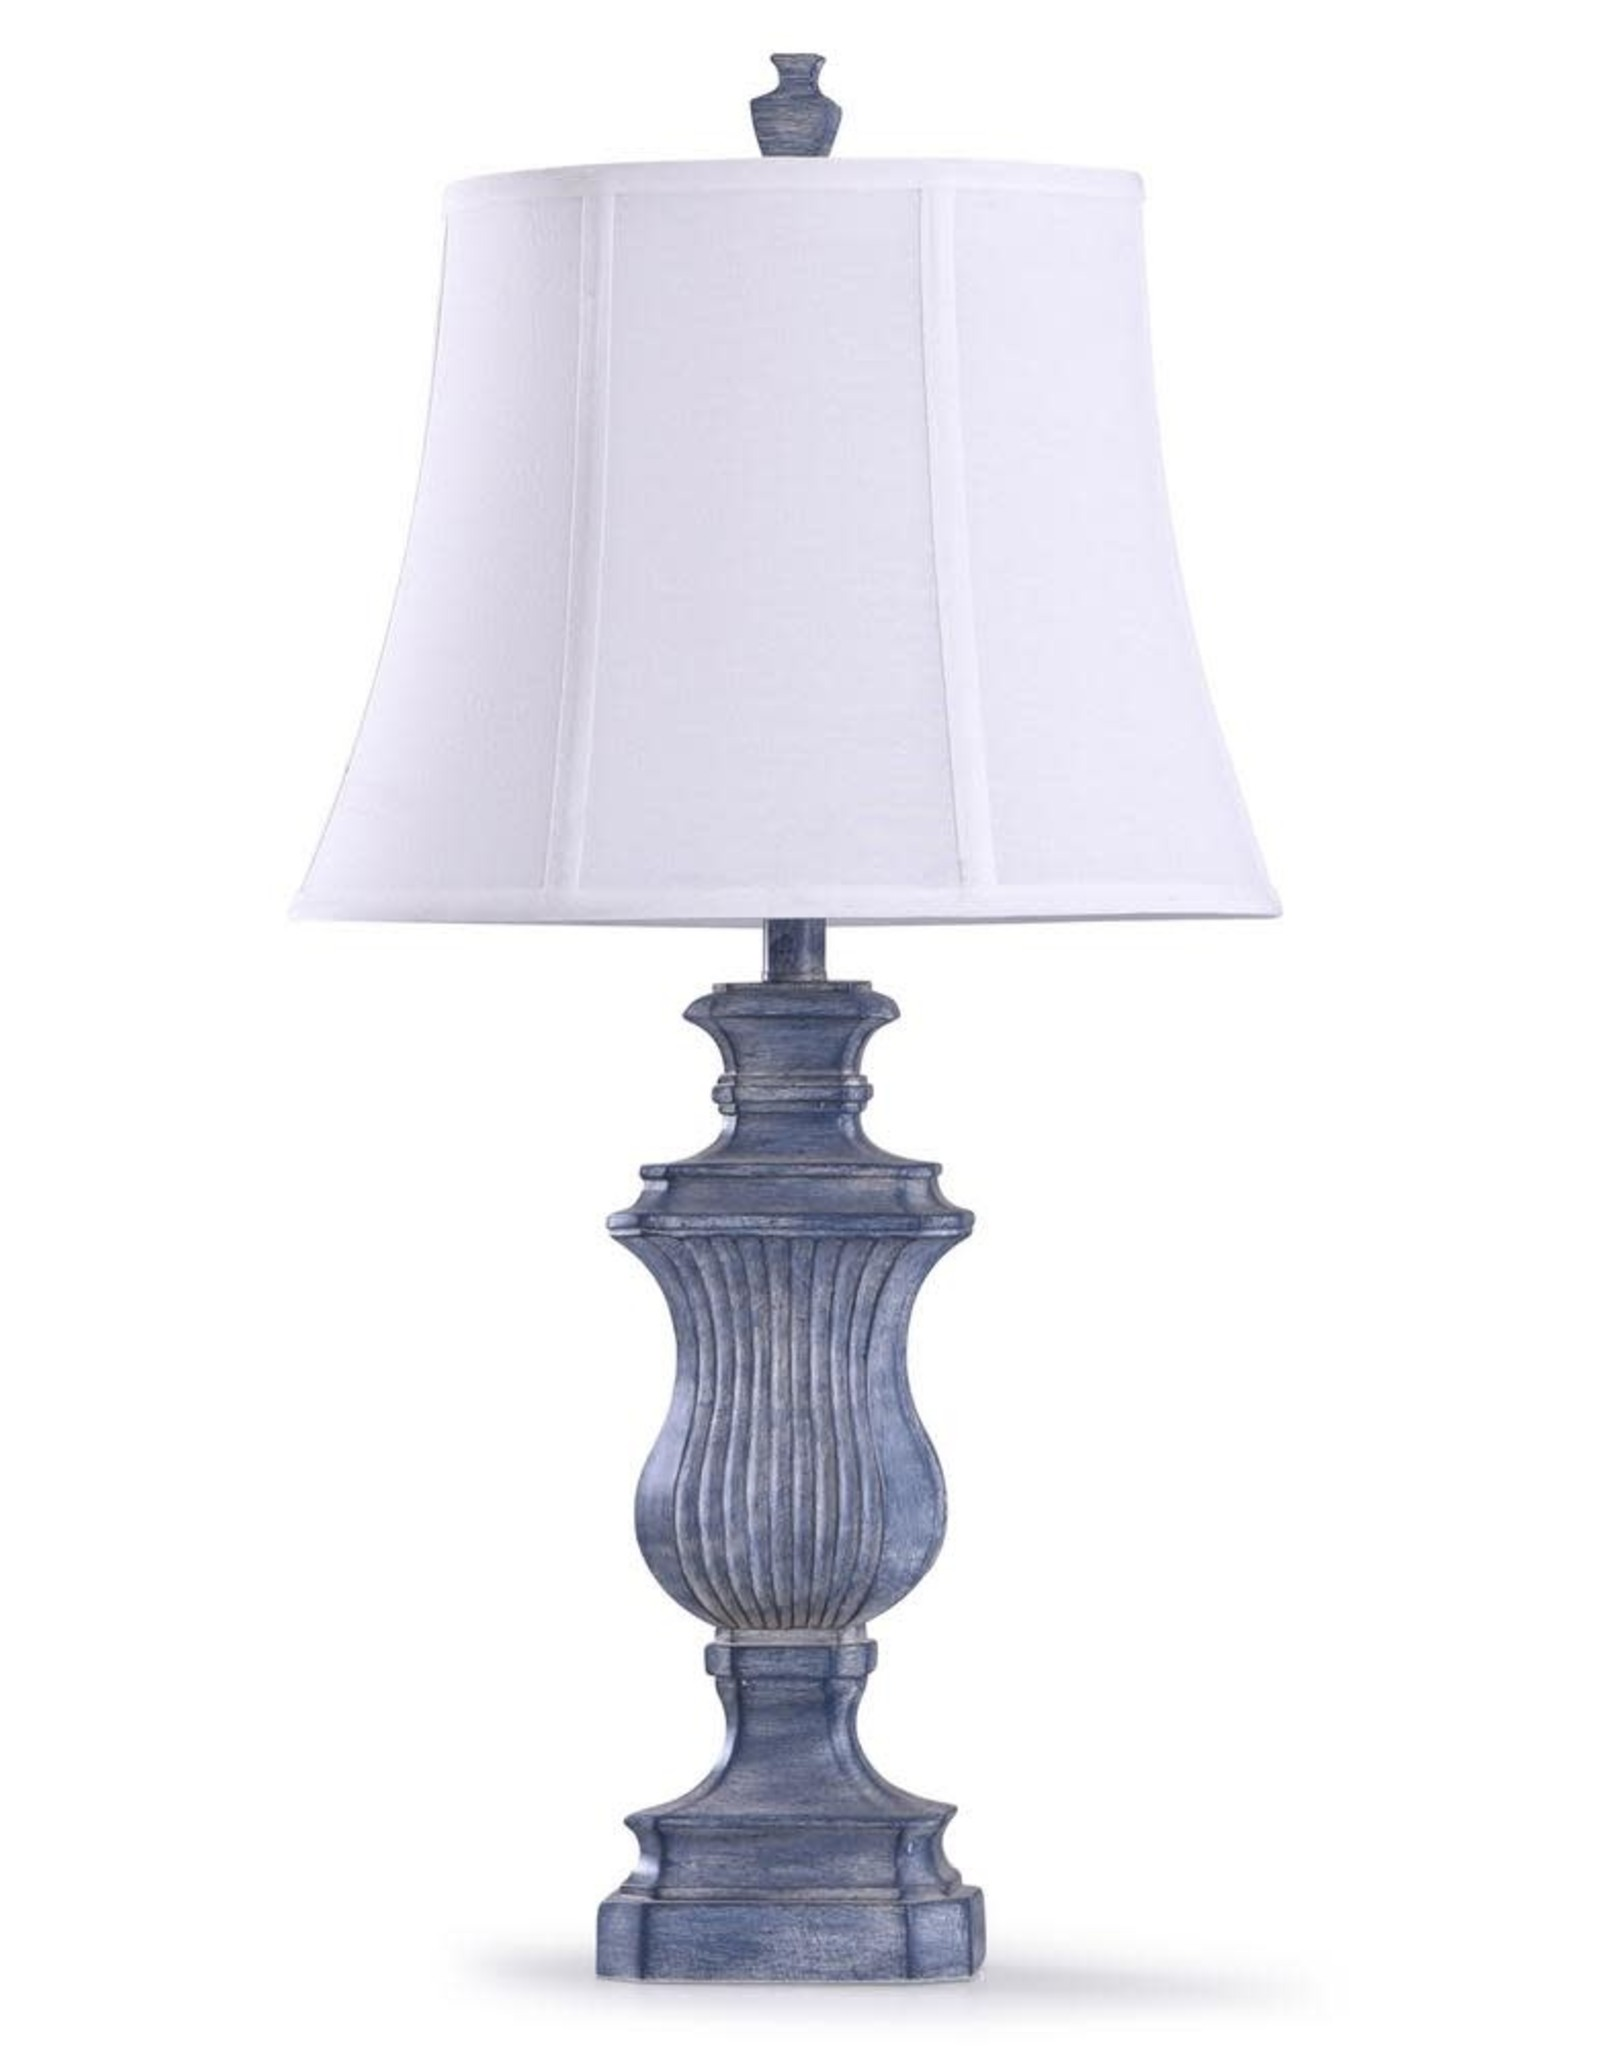 STYLECRAFT HOME CLLCTIONS Tao's 30.5 in. Denim Blue Table Lamp